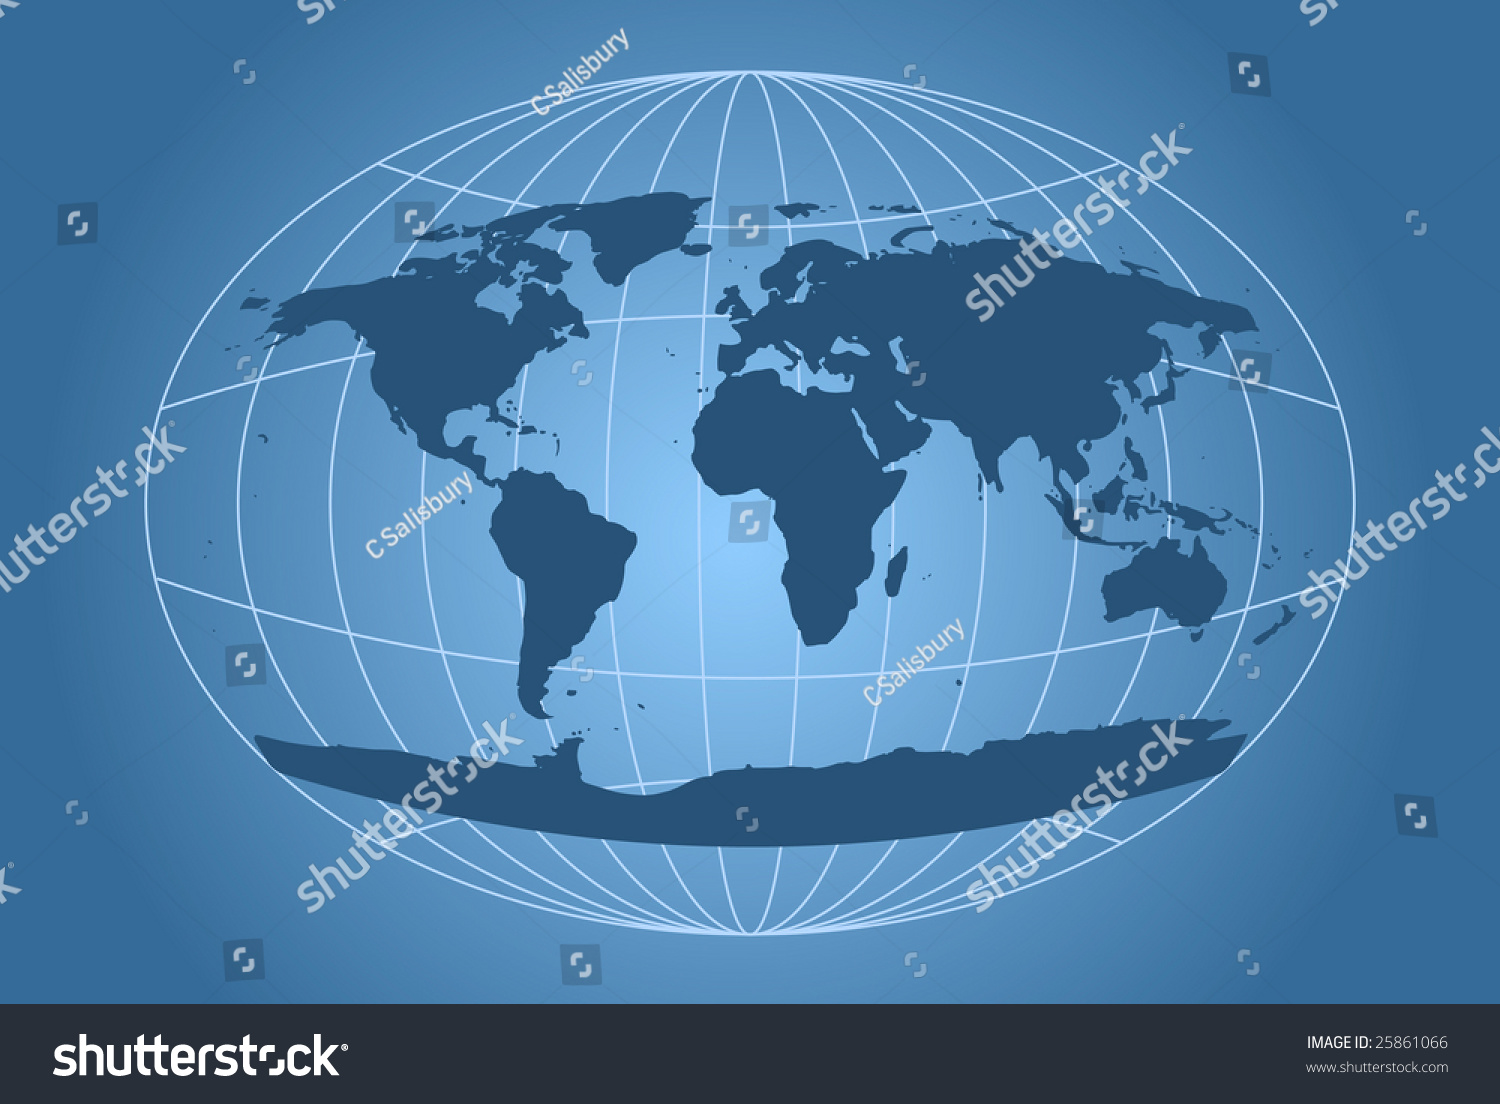 World map ovalshaped grid vectores en stock 25861066 shutterstock world map with oval shaped grid gumiabroncs Image collections